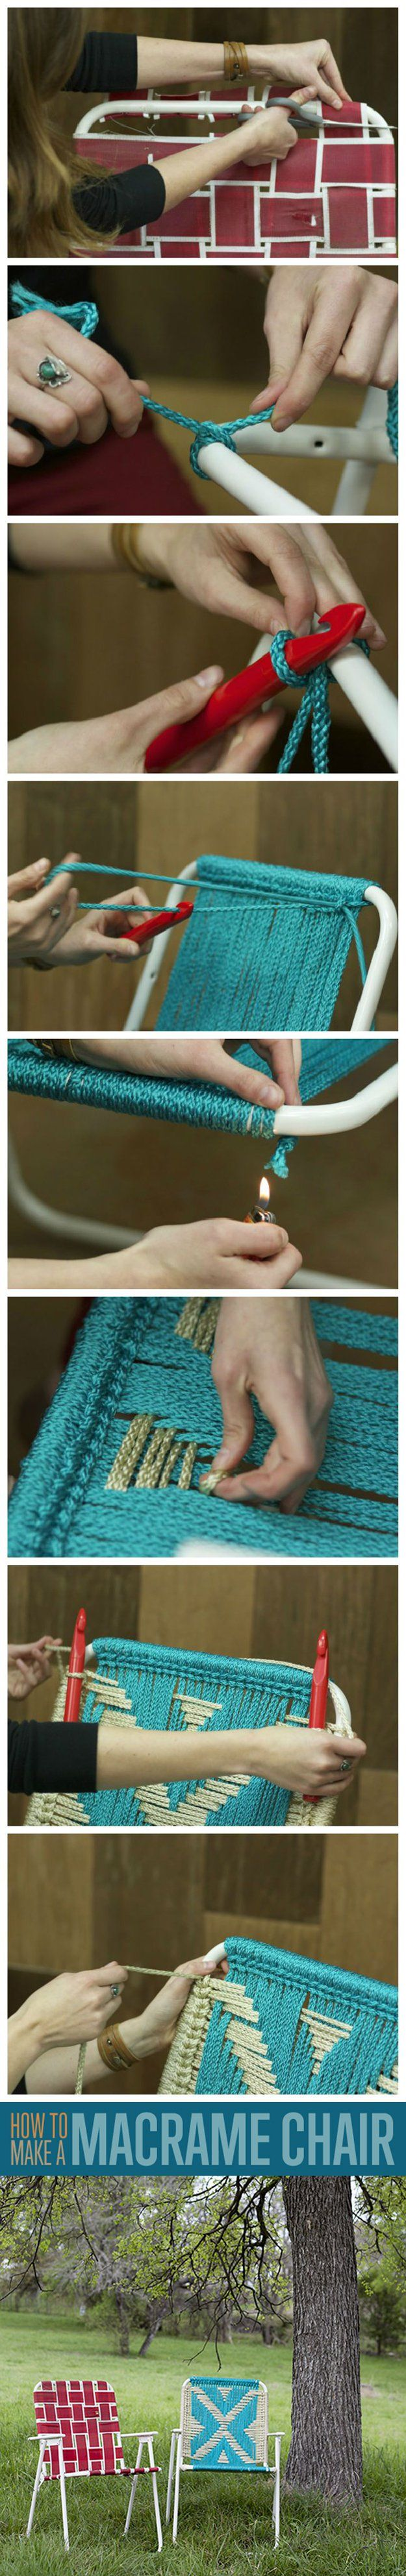 Macrame lawn chair upcycle...... if I ever have this kind of time, this is a cool idea.